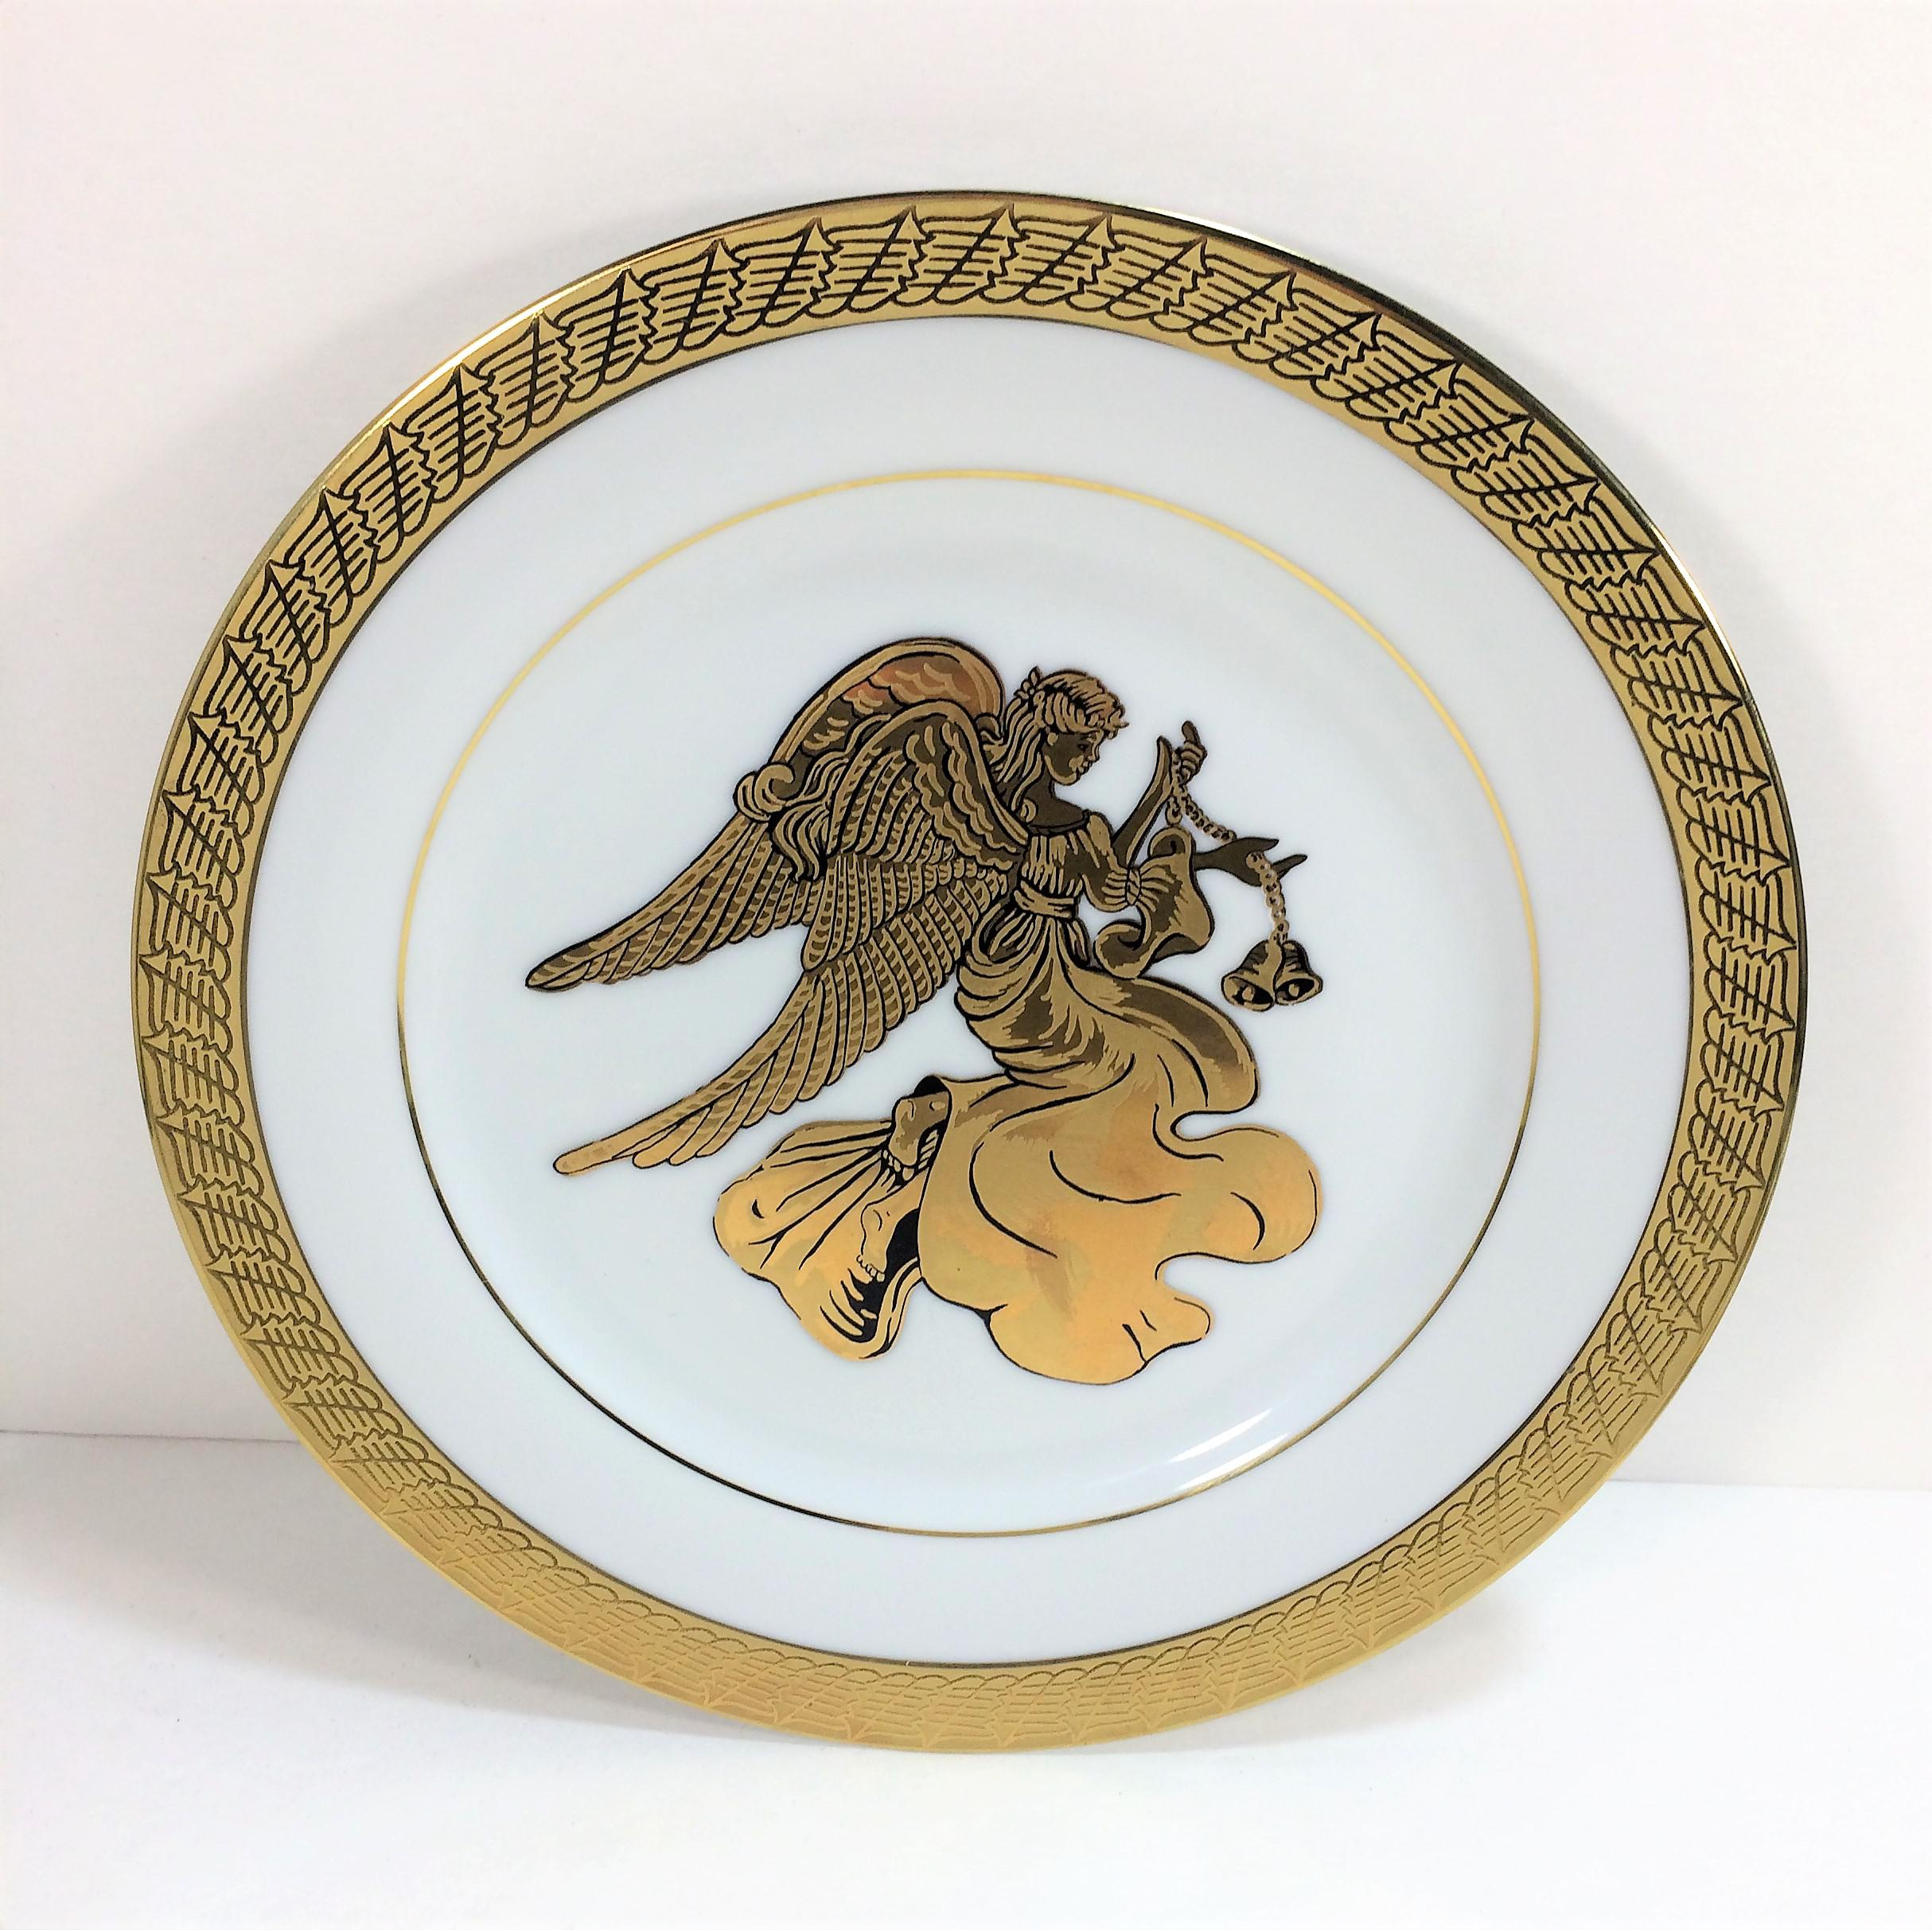 Vintage Renaissance Angels White \u0026 Gold Porcelain Dinnerware or Decorative Plates - Set of 4 - & Vintage Renaissance Angels White \u0026 Gold Porcelain Dinnerware or ...